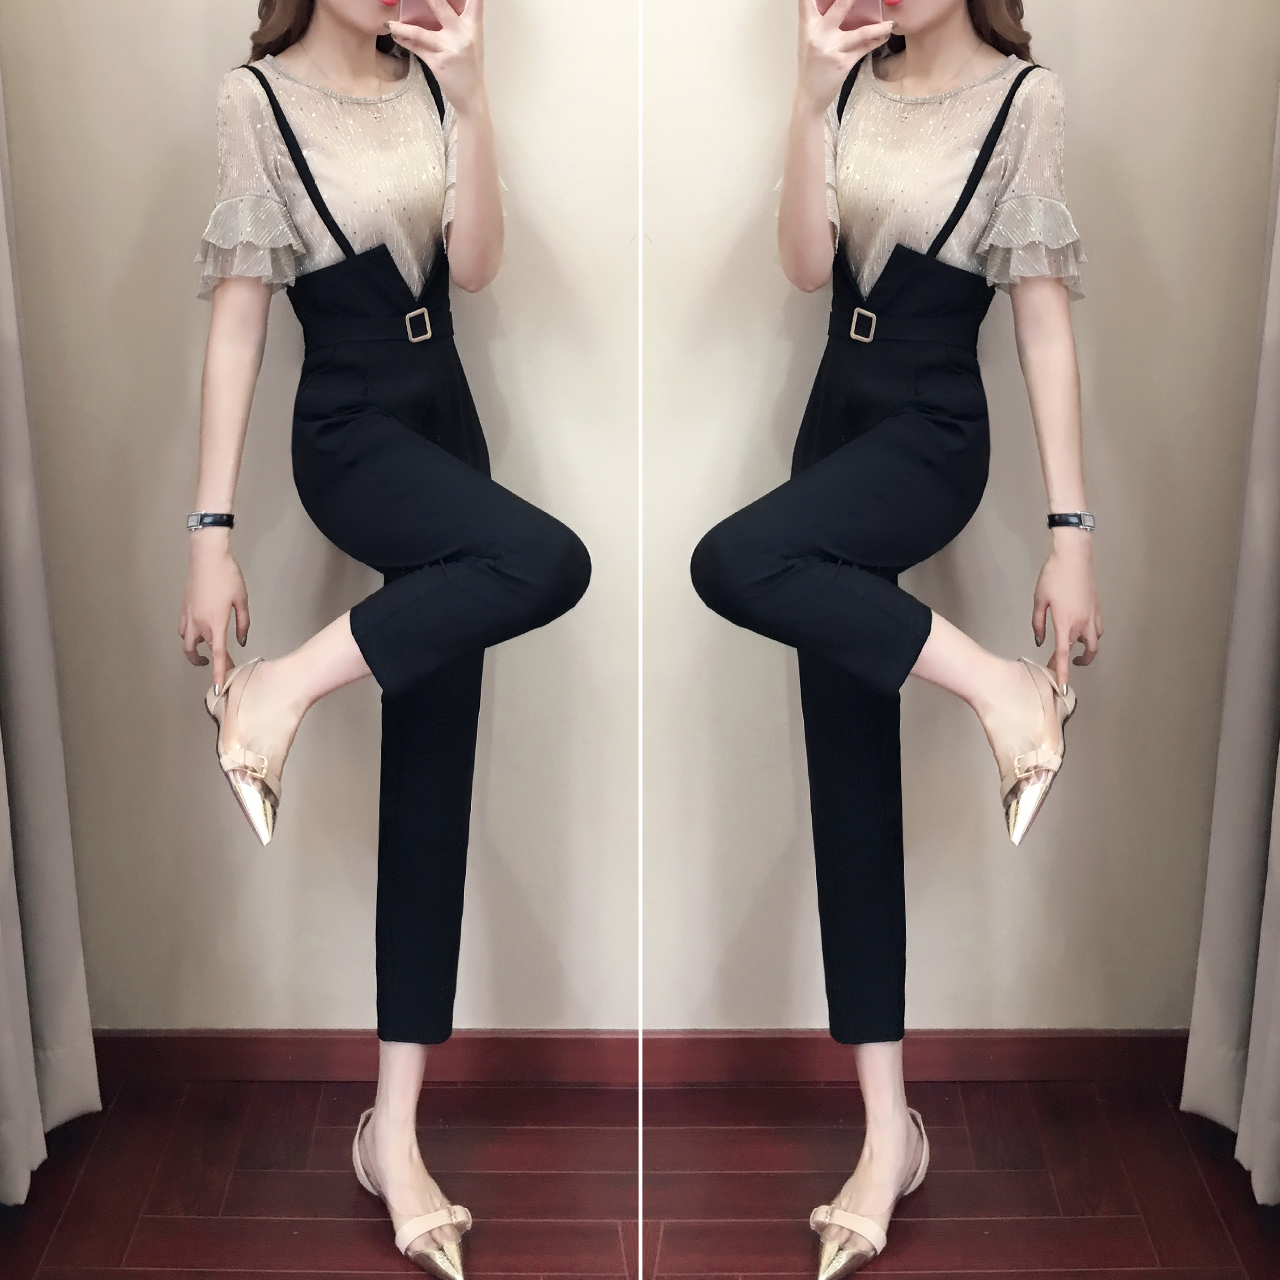 Casual women 2 pieces pant sets 2018 summer new fashion ruffles sleeved and black pencil pants lady clothing sets 2